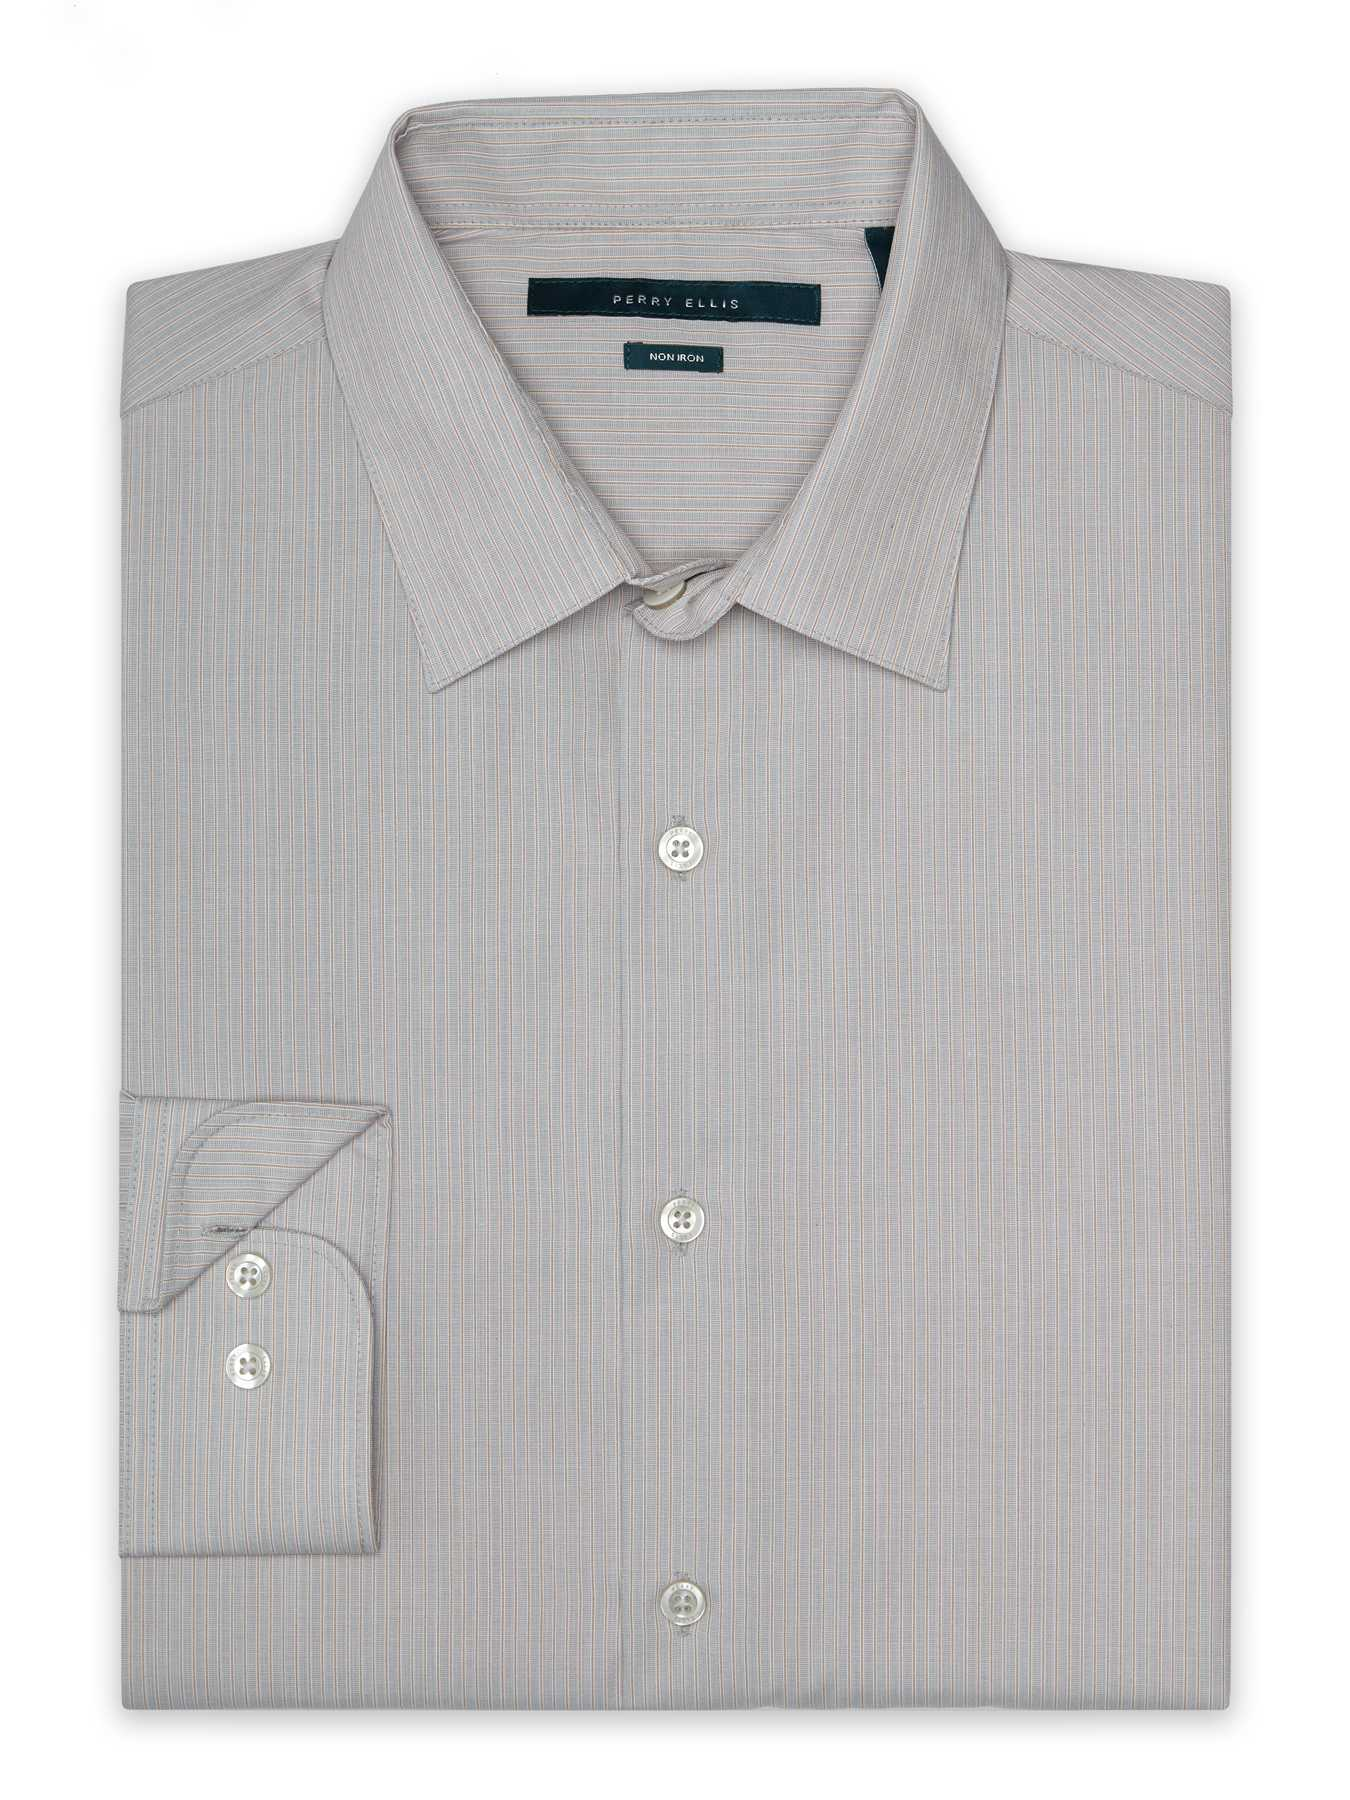 Perry Ellis Non-Iron Subtle Stripe Pattern Shirt